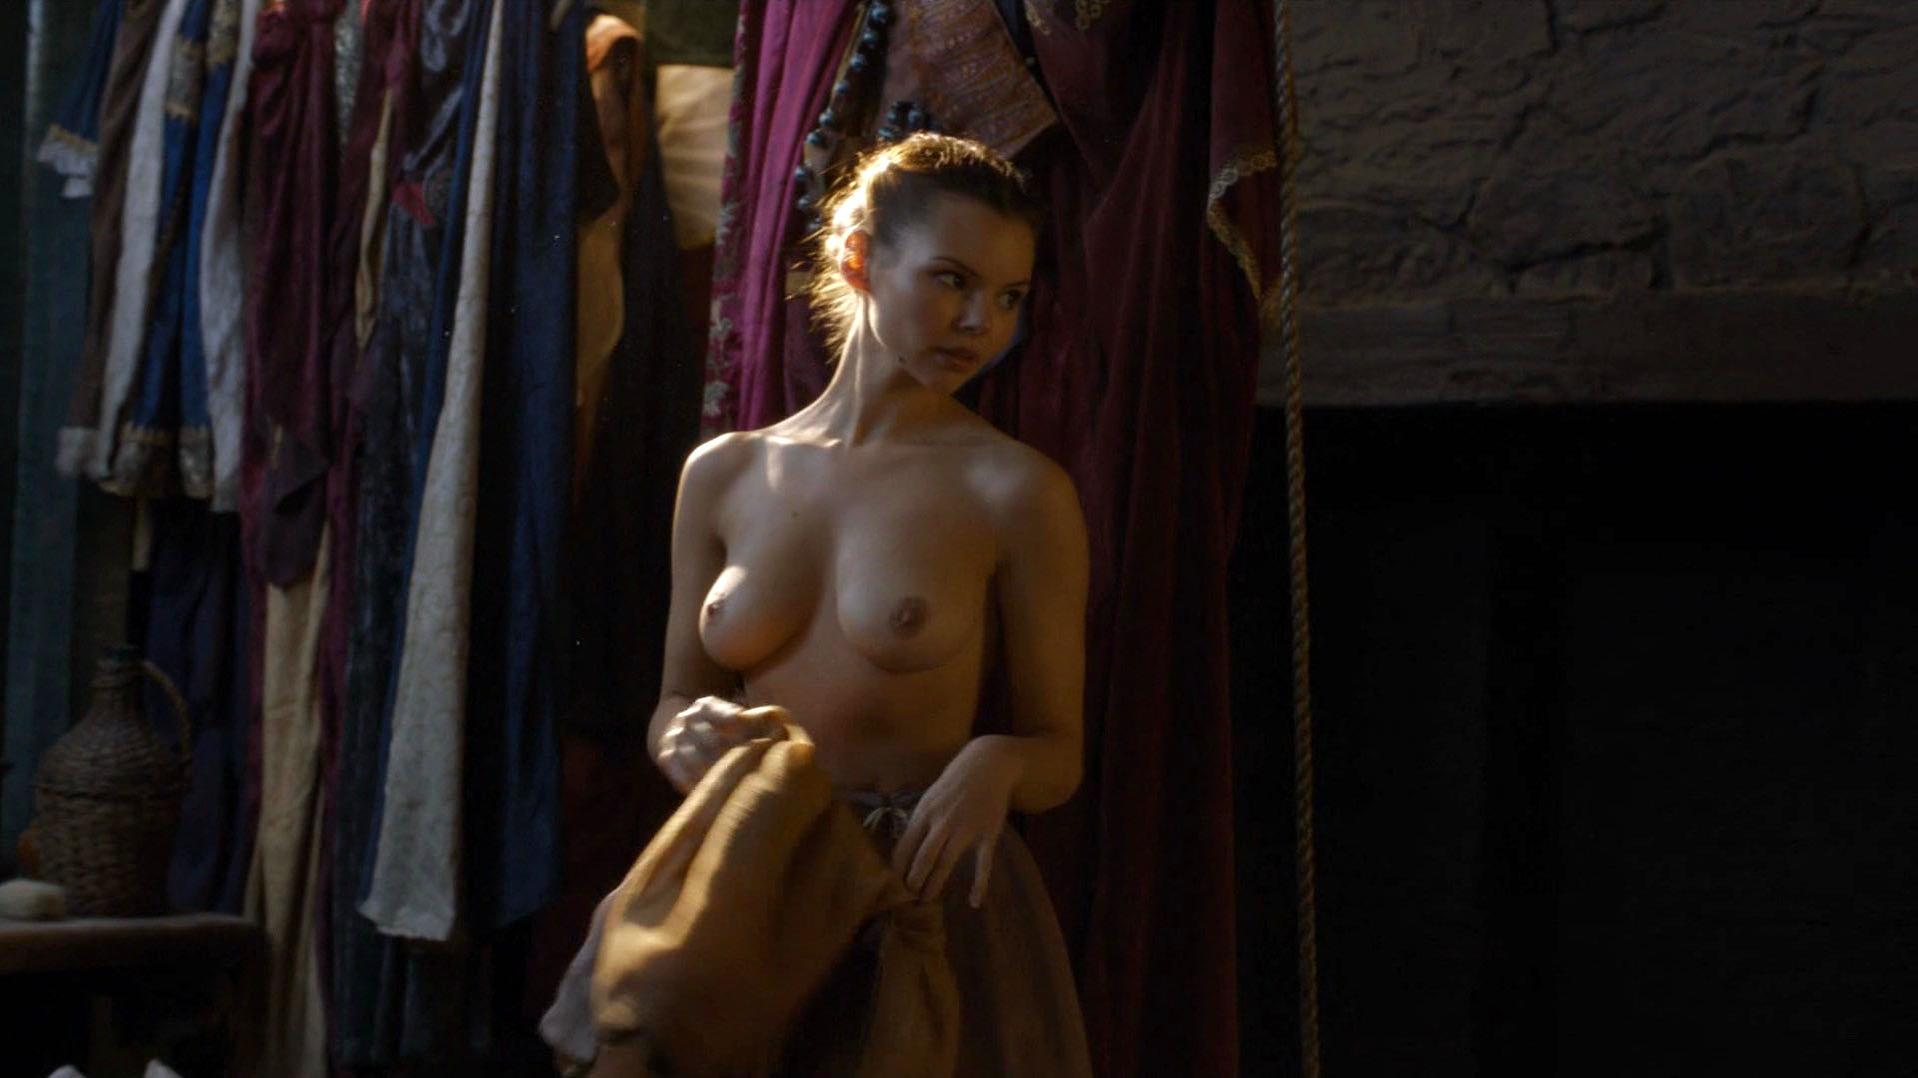 Nude Video Celebs  Eline Powell Nude - Game Of Thrones S06E05 2016-2196